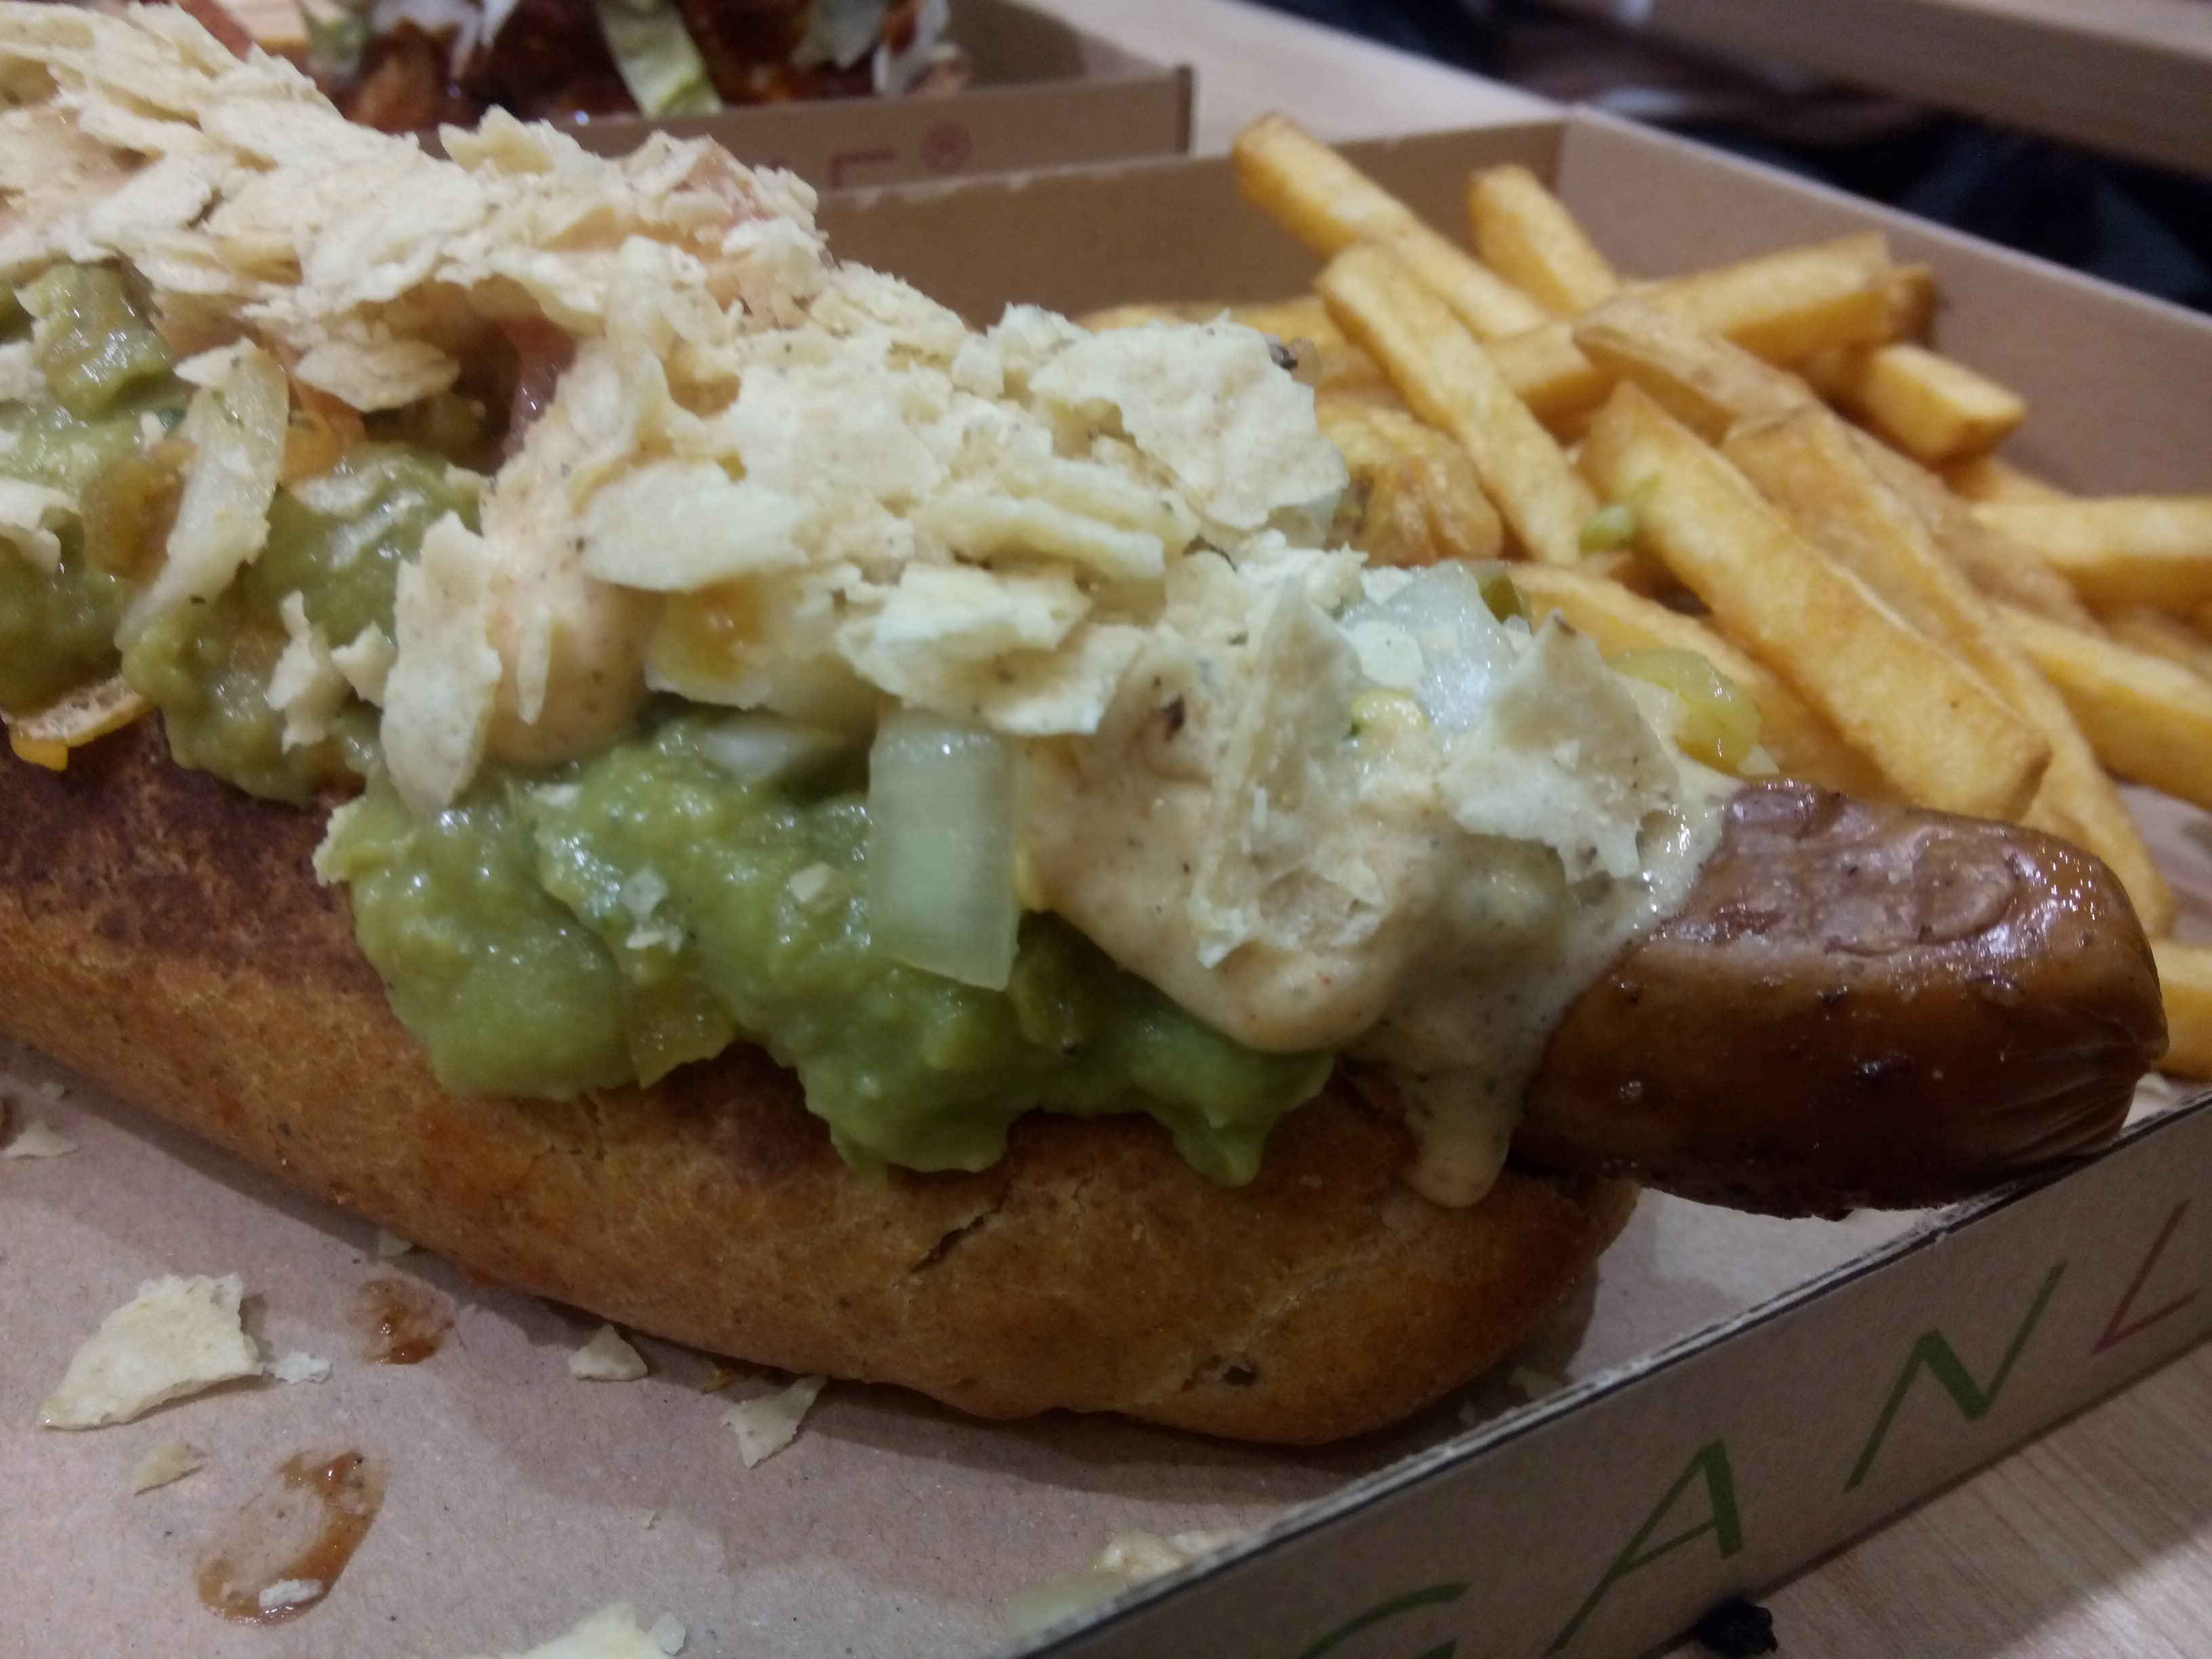 An overflowing hotdog with avocado and cheesey sauce, fries to the right